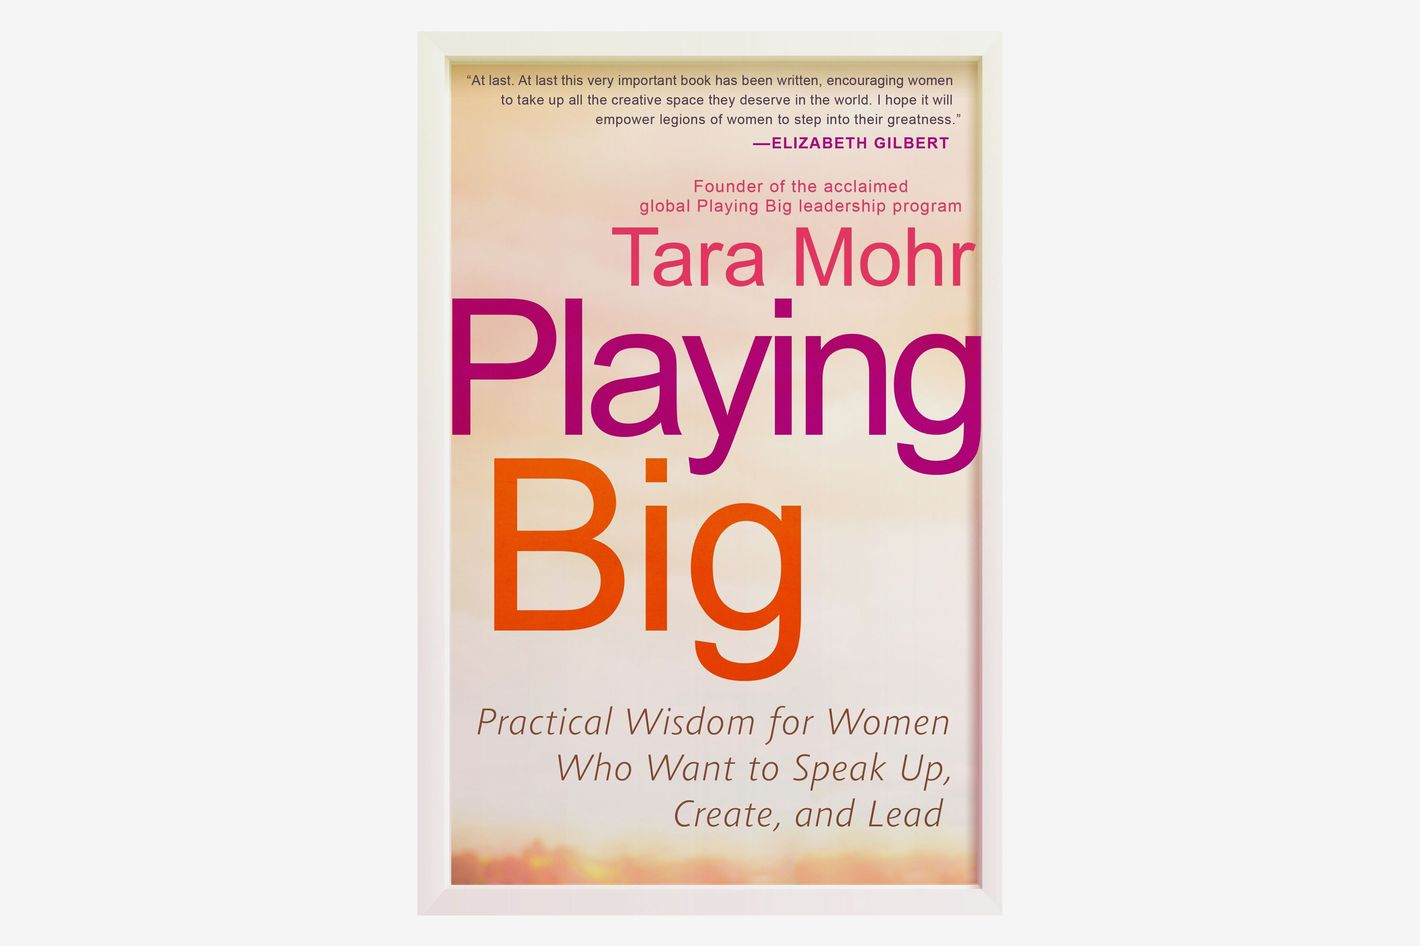 <em>Playing Big: Practical Wisdom for Women Who Want to Speak Up, Create and Lead</em>, by Tara Mohr